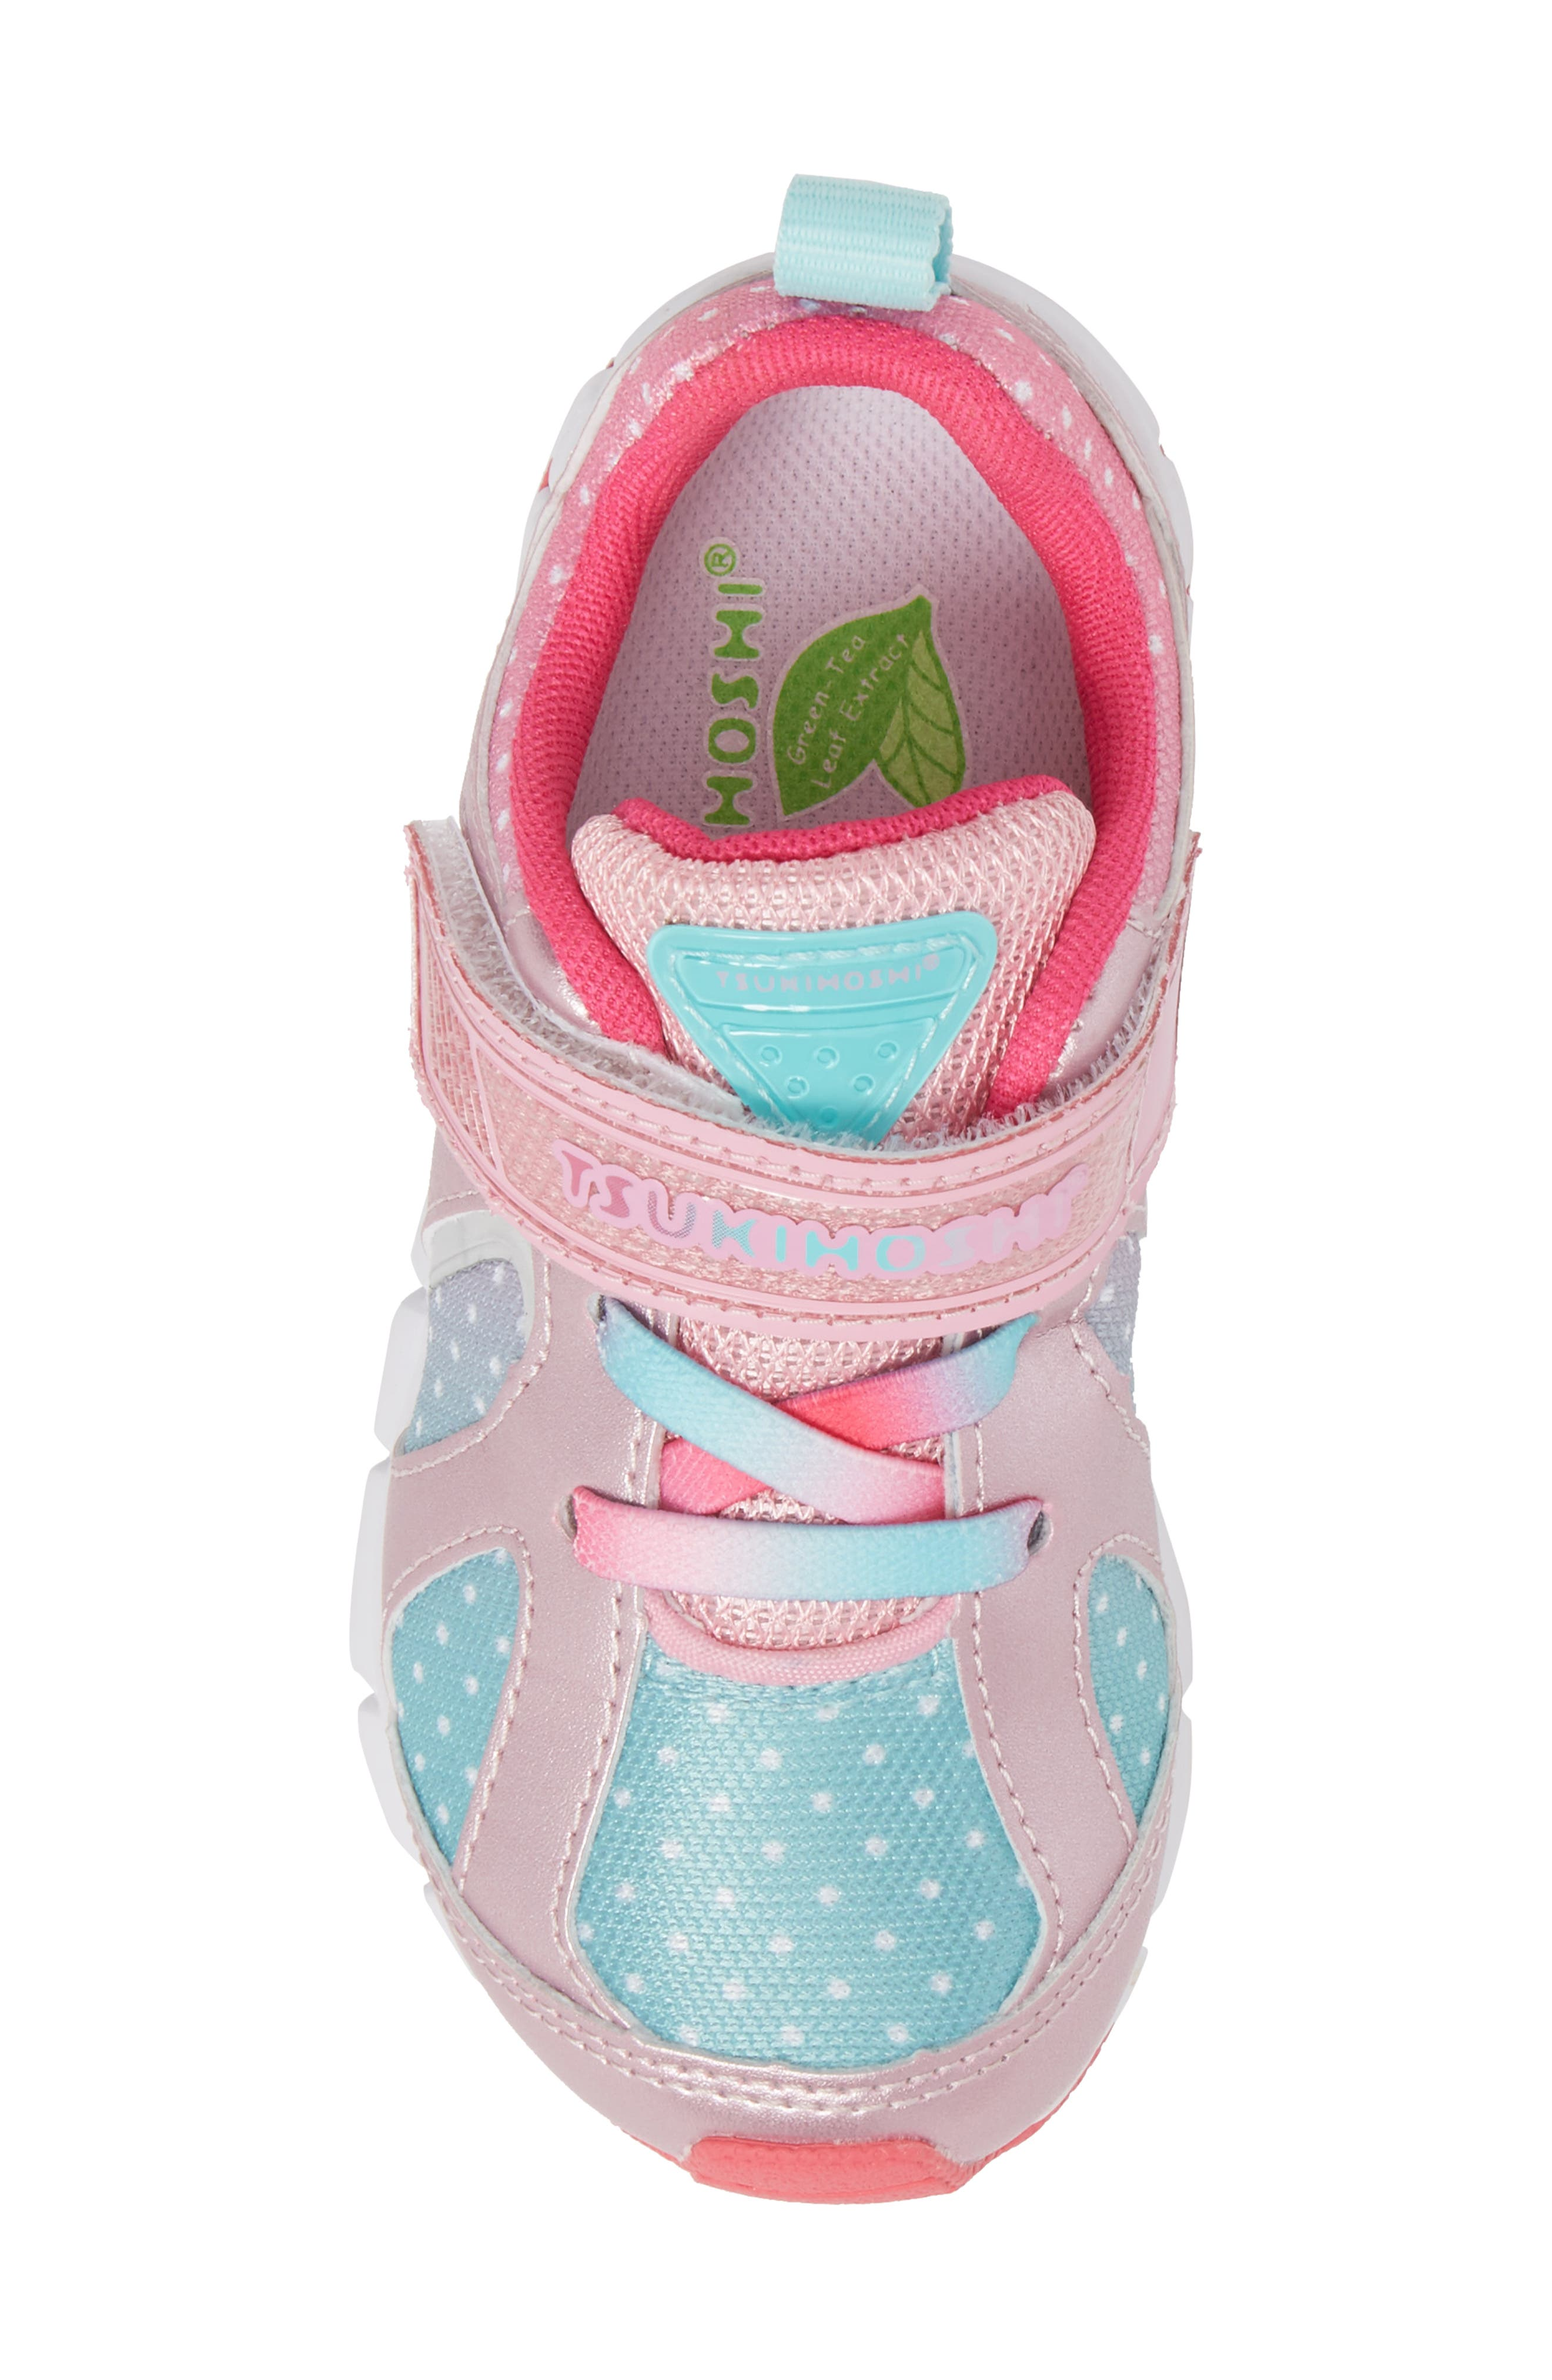 Rainbow Washable Sneaker,                             Alternate thumbnail 5, color,                             Rose/ Mint